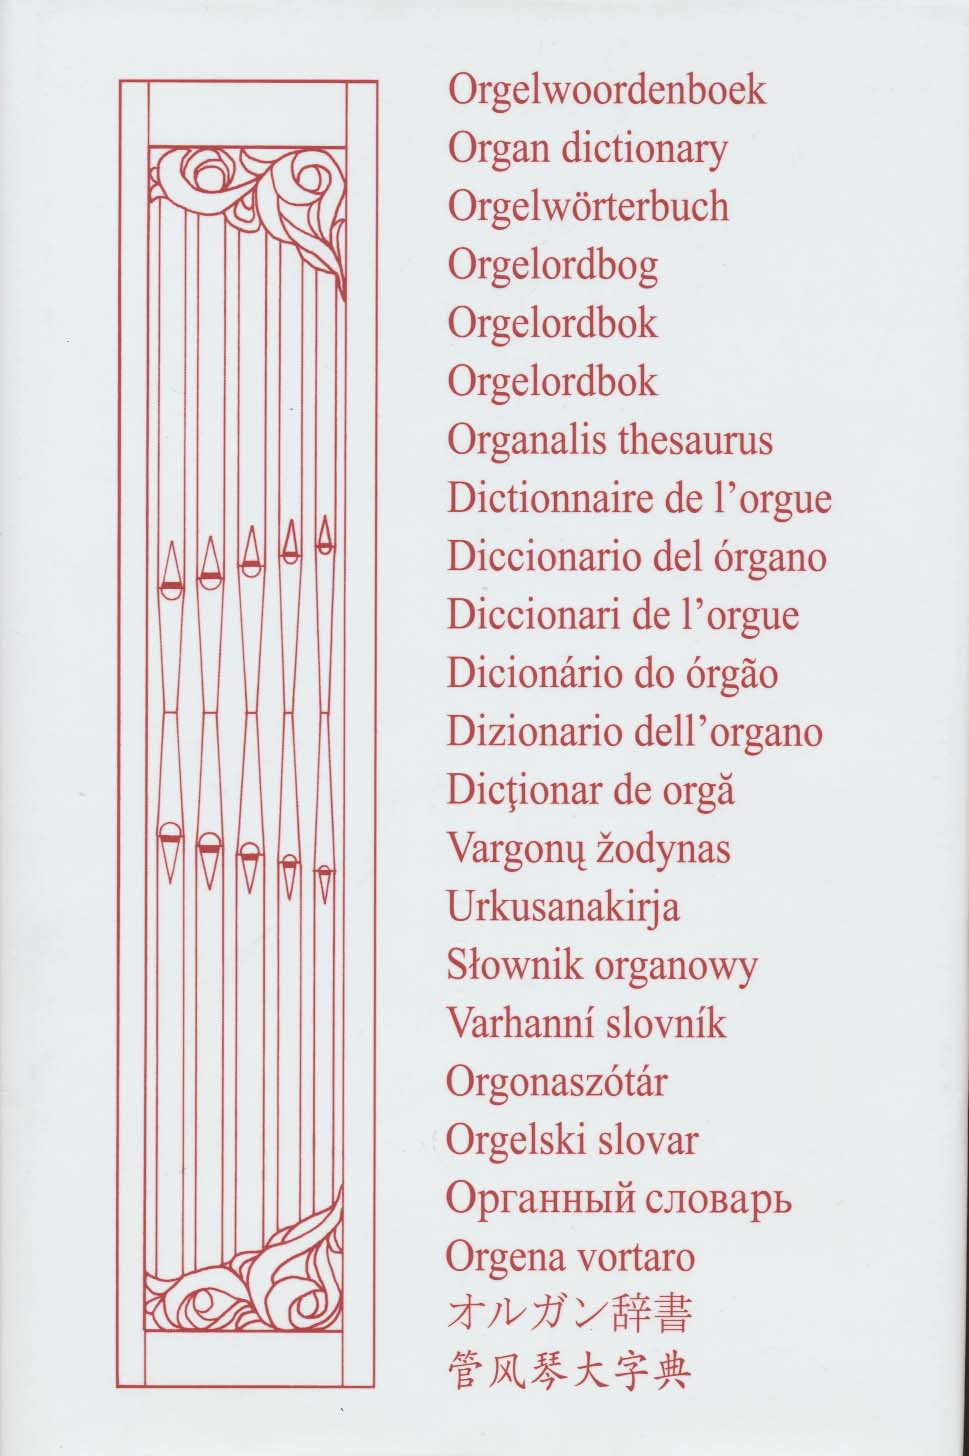 Organ Dictionary - Orgelwörterbuch - Dictionnaire de l'orgue - Urkusanakirja